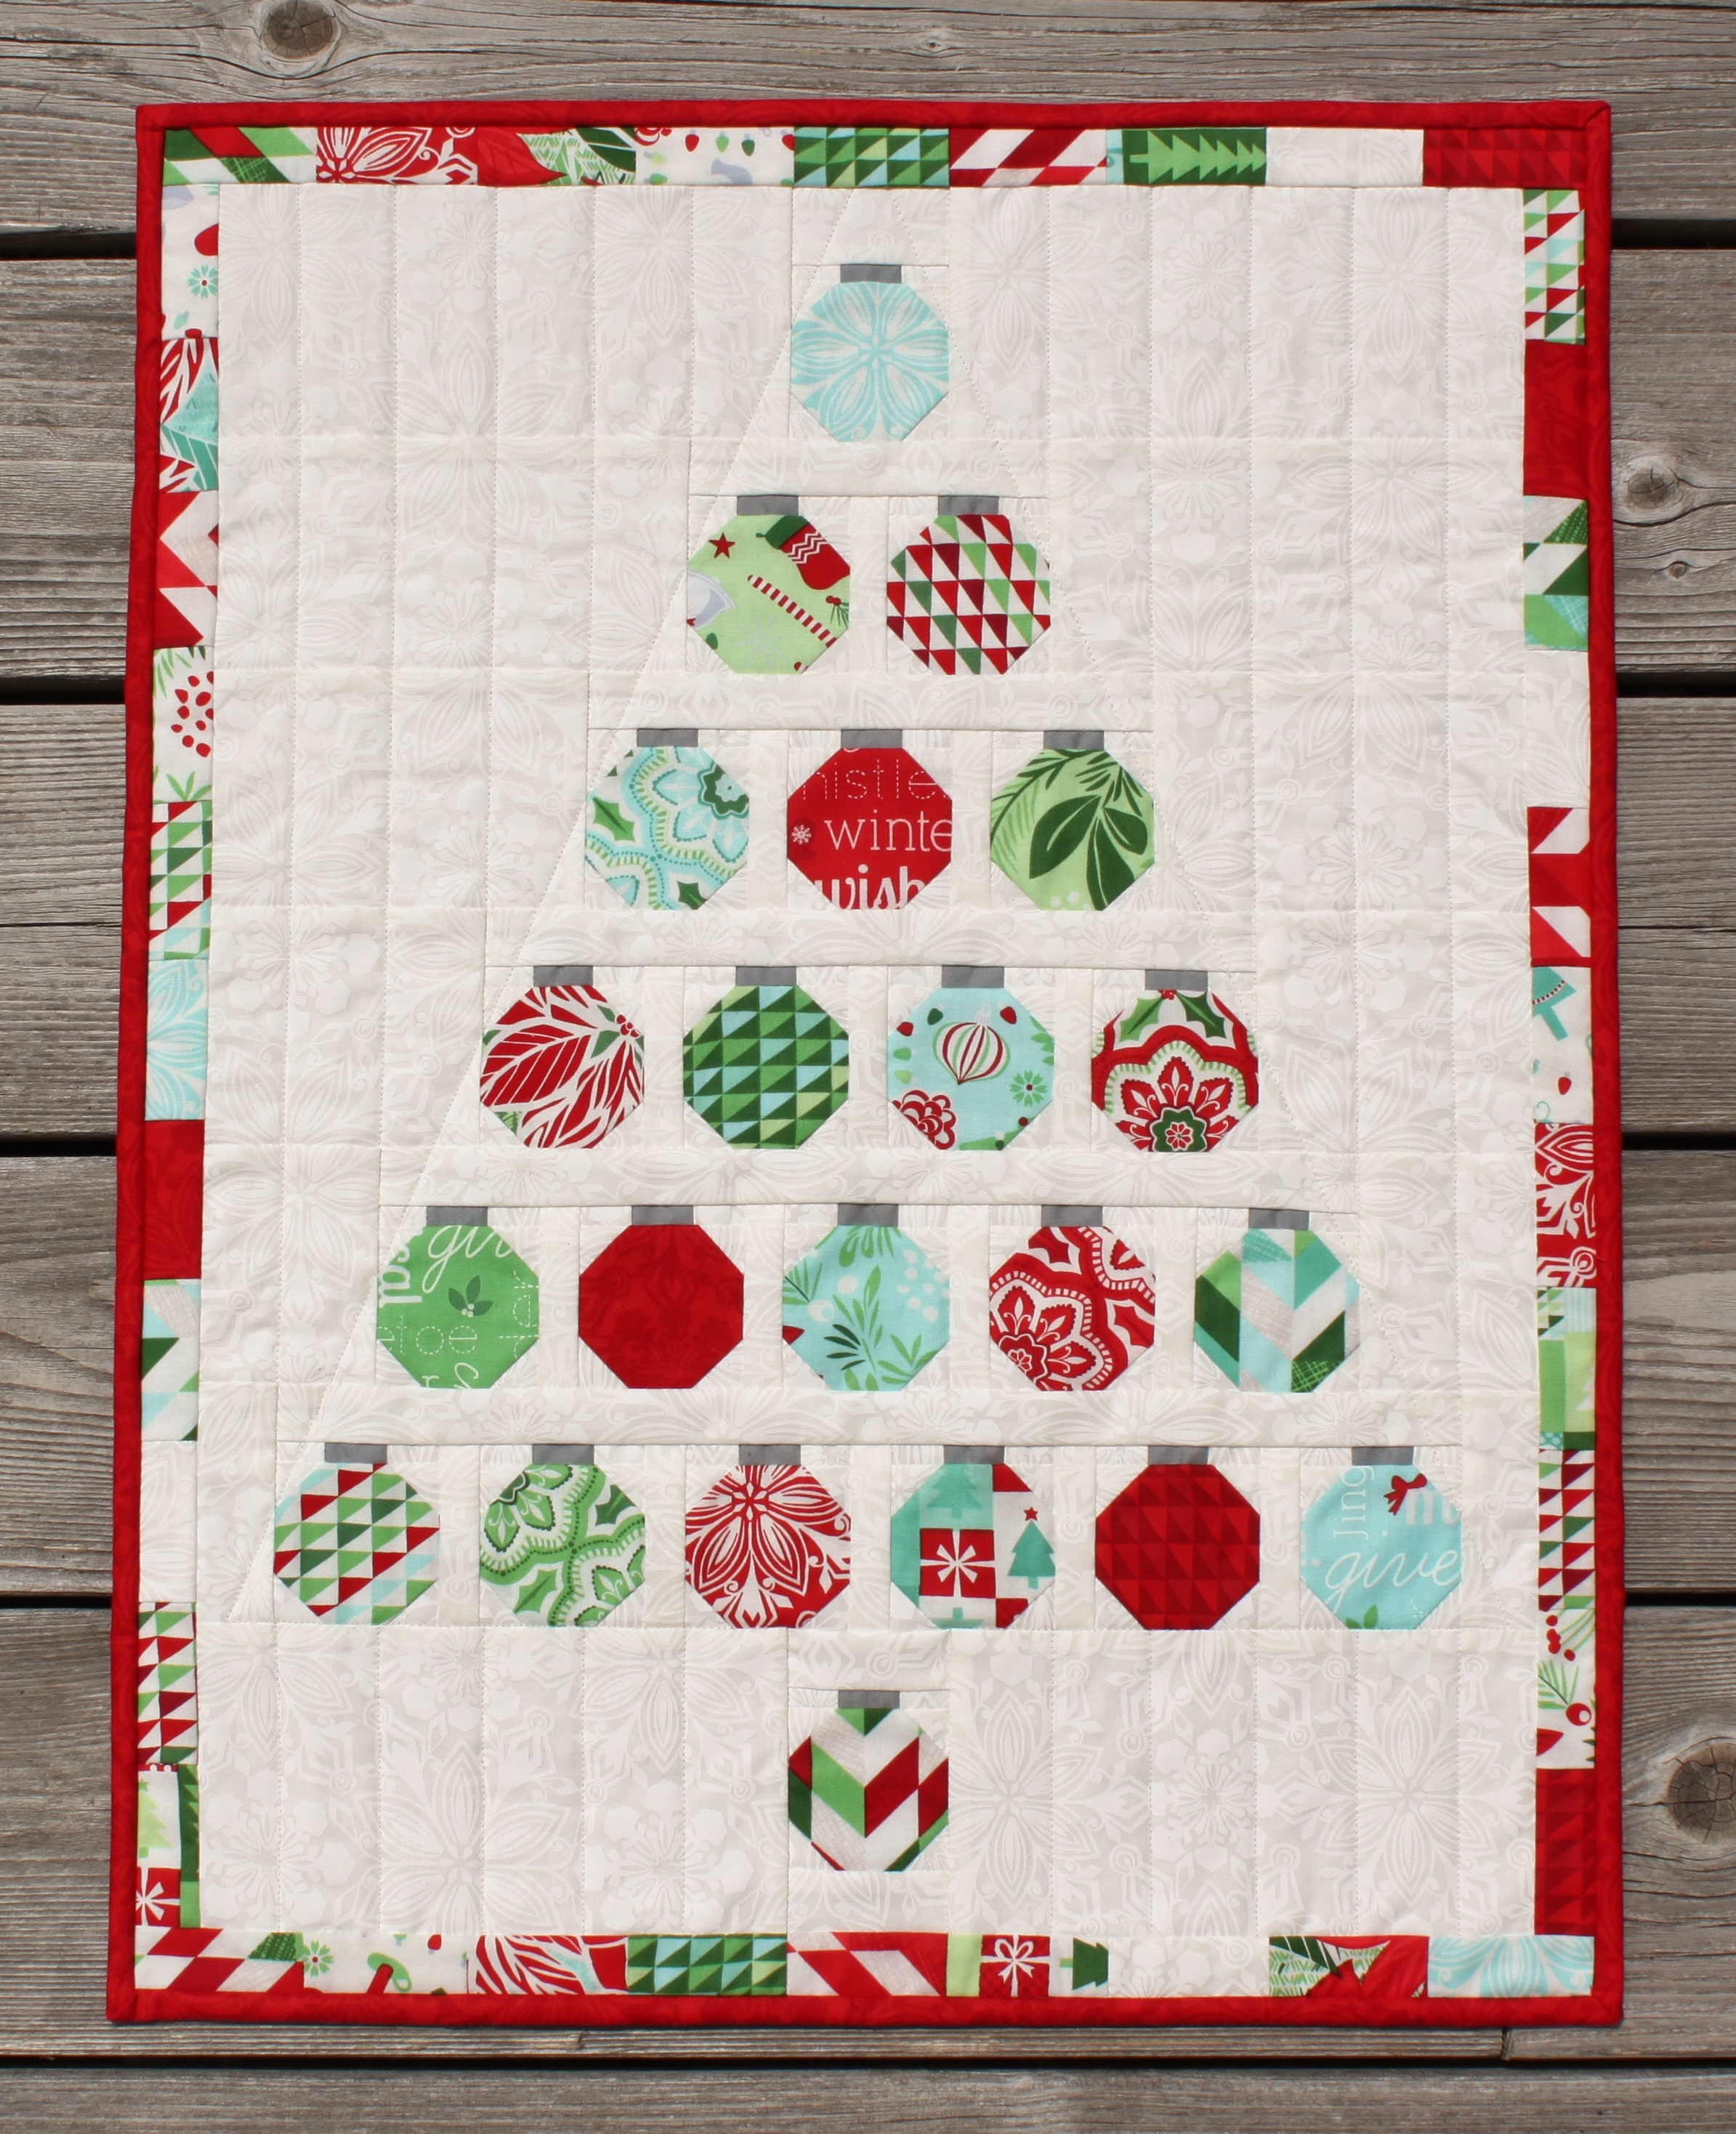 Christmas Quilt Block Patterns Free : Simple Blocks Form a Charming Christmas Tree - Quilting Digest